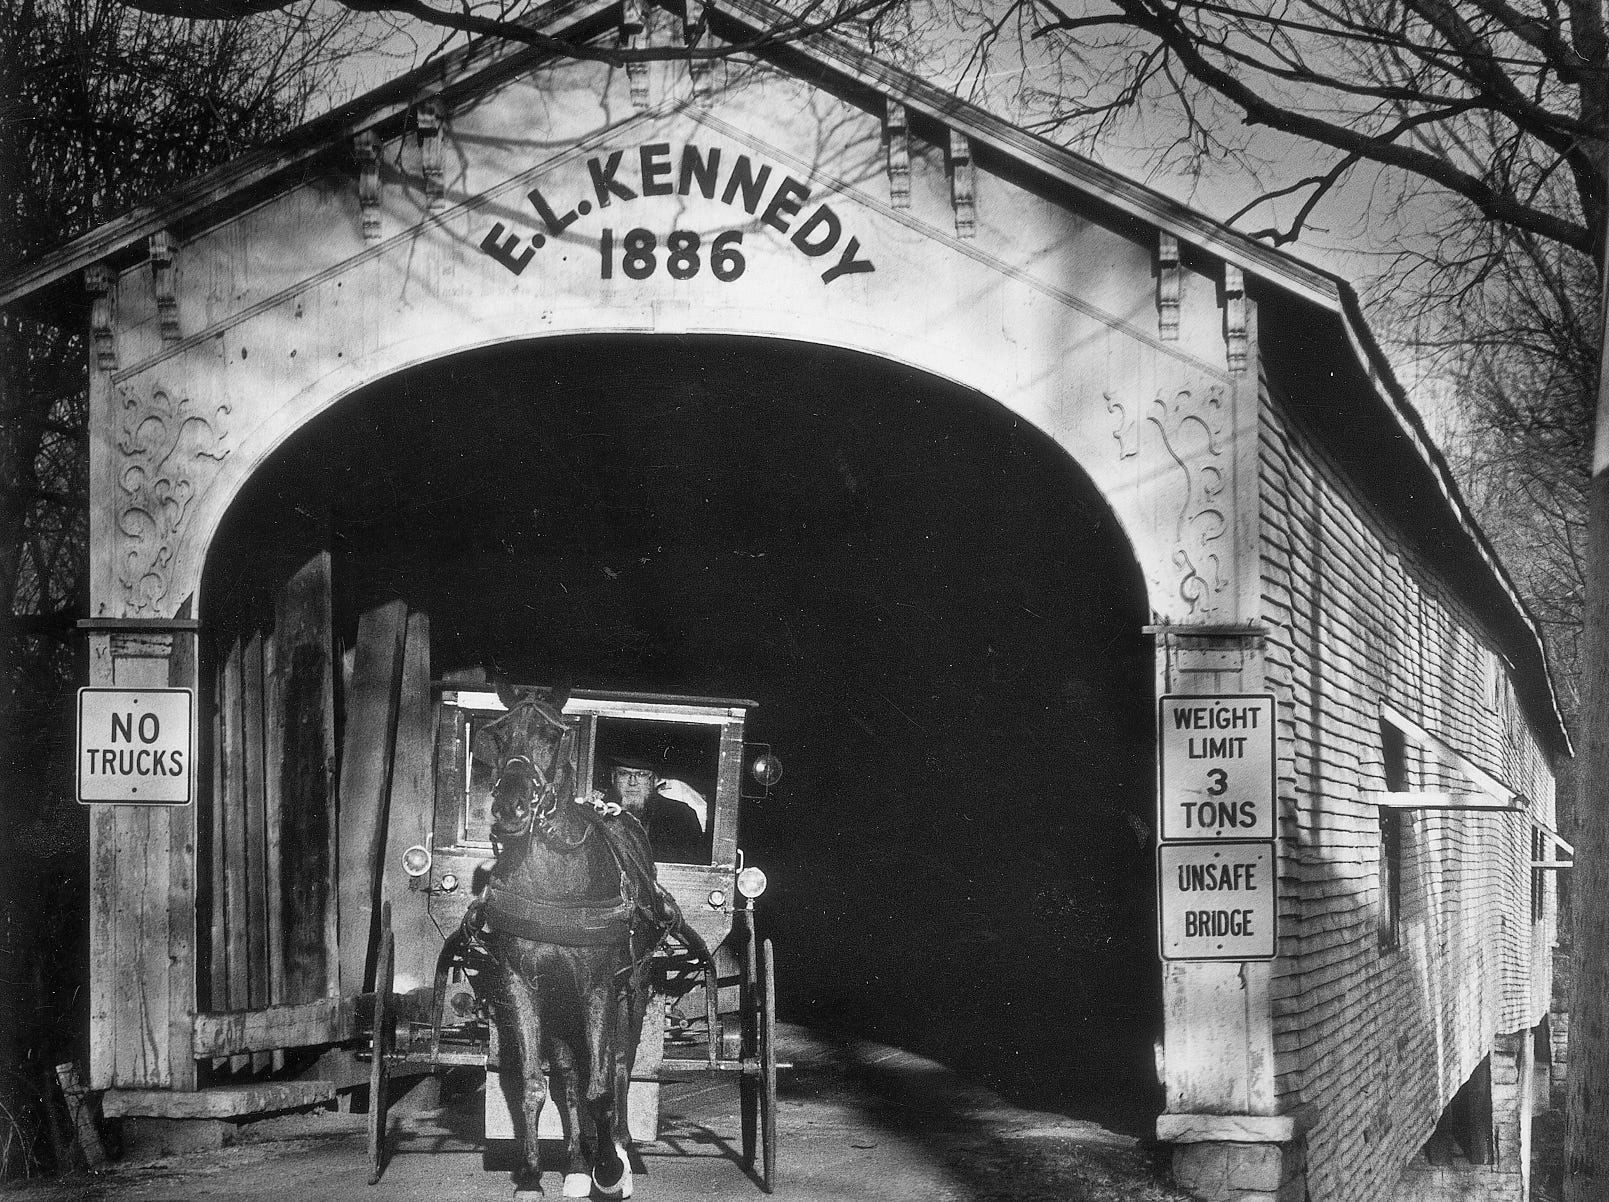 An Amish-driven horse and buggy pass through the historic E.L. Kennedy covered bridge in Moscow in Rush County in 1986.